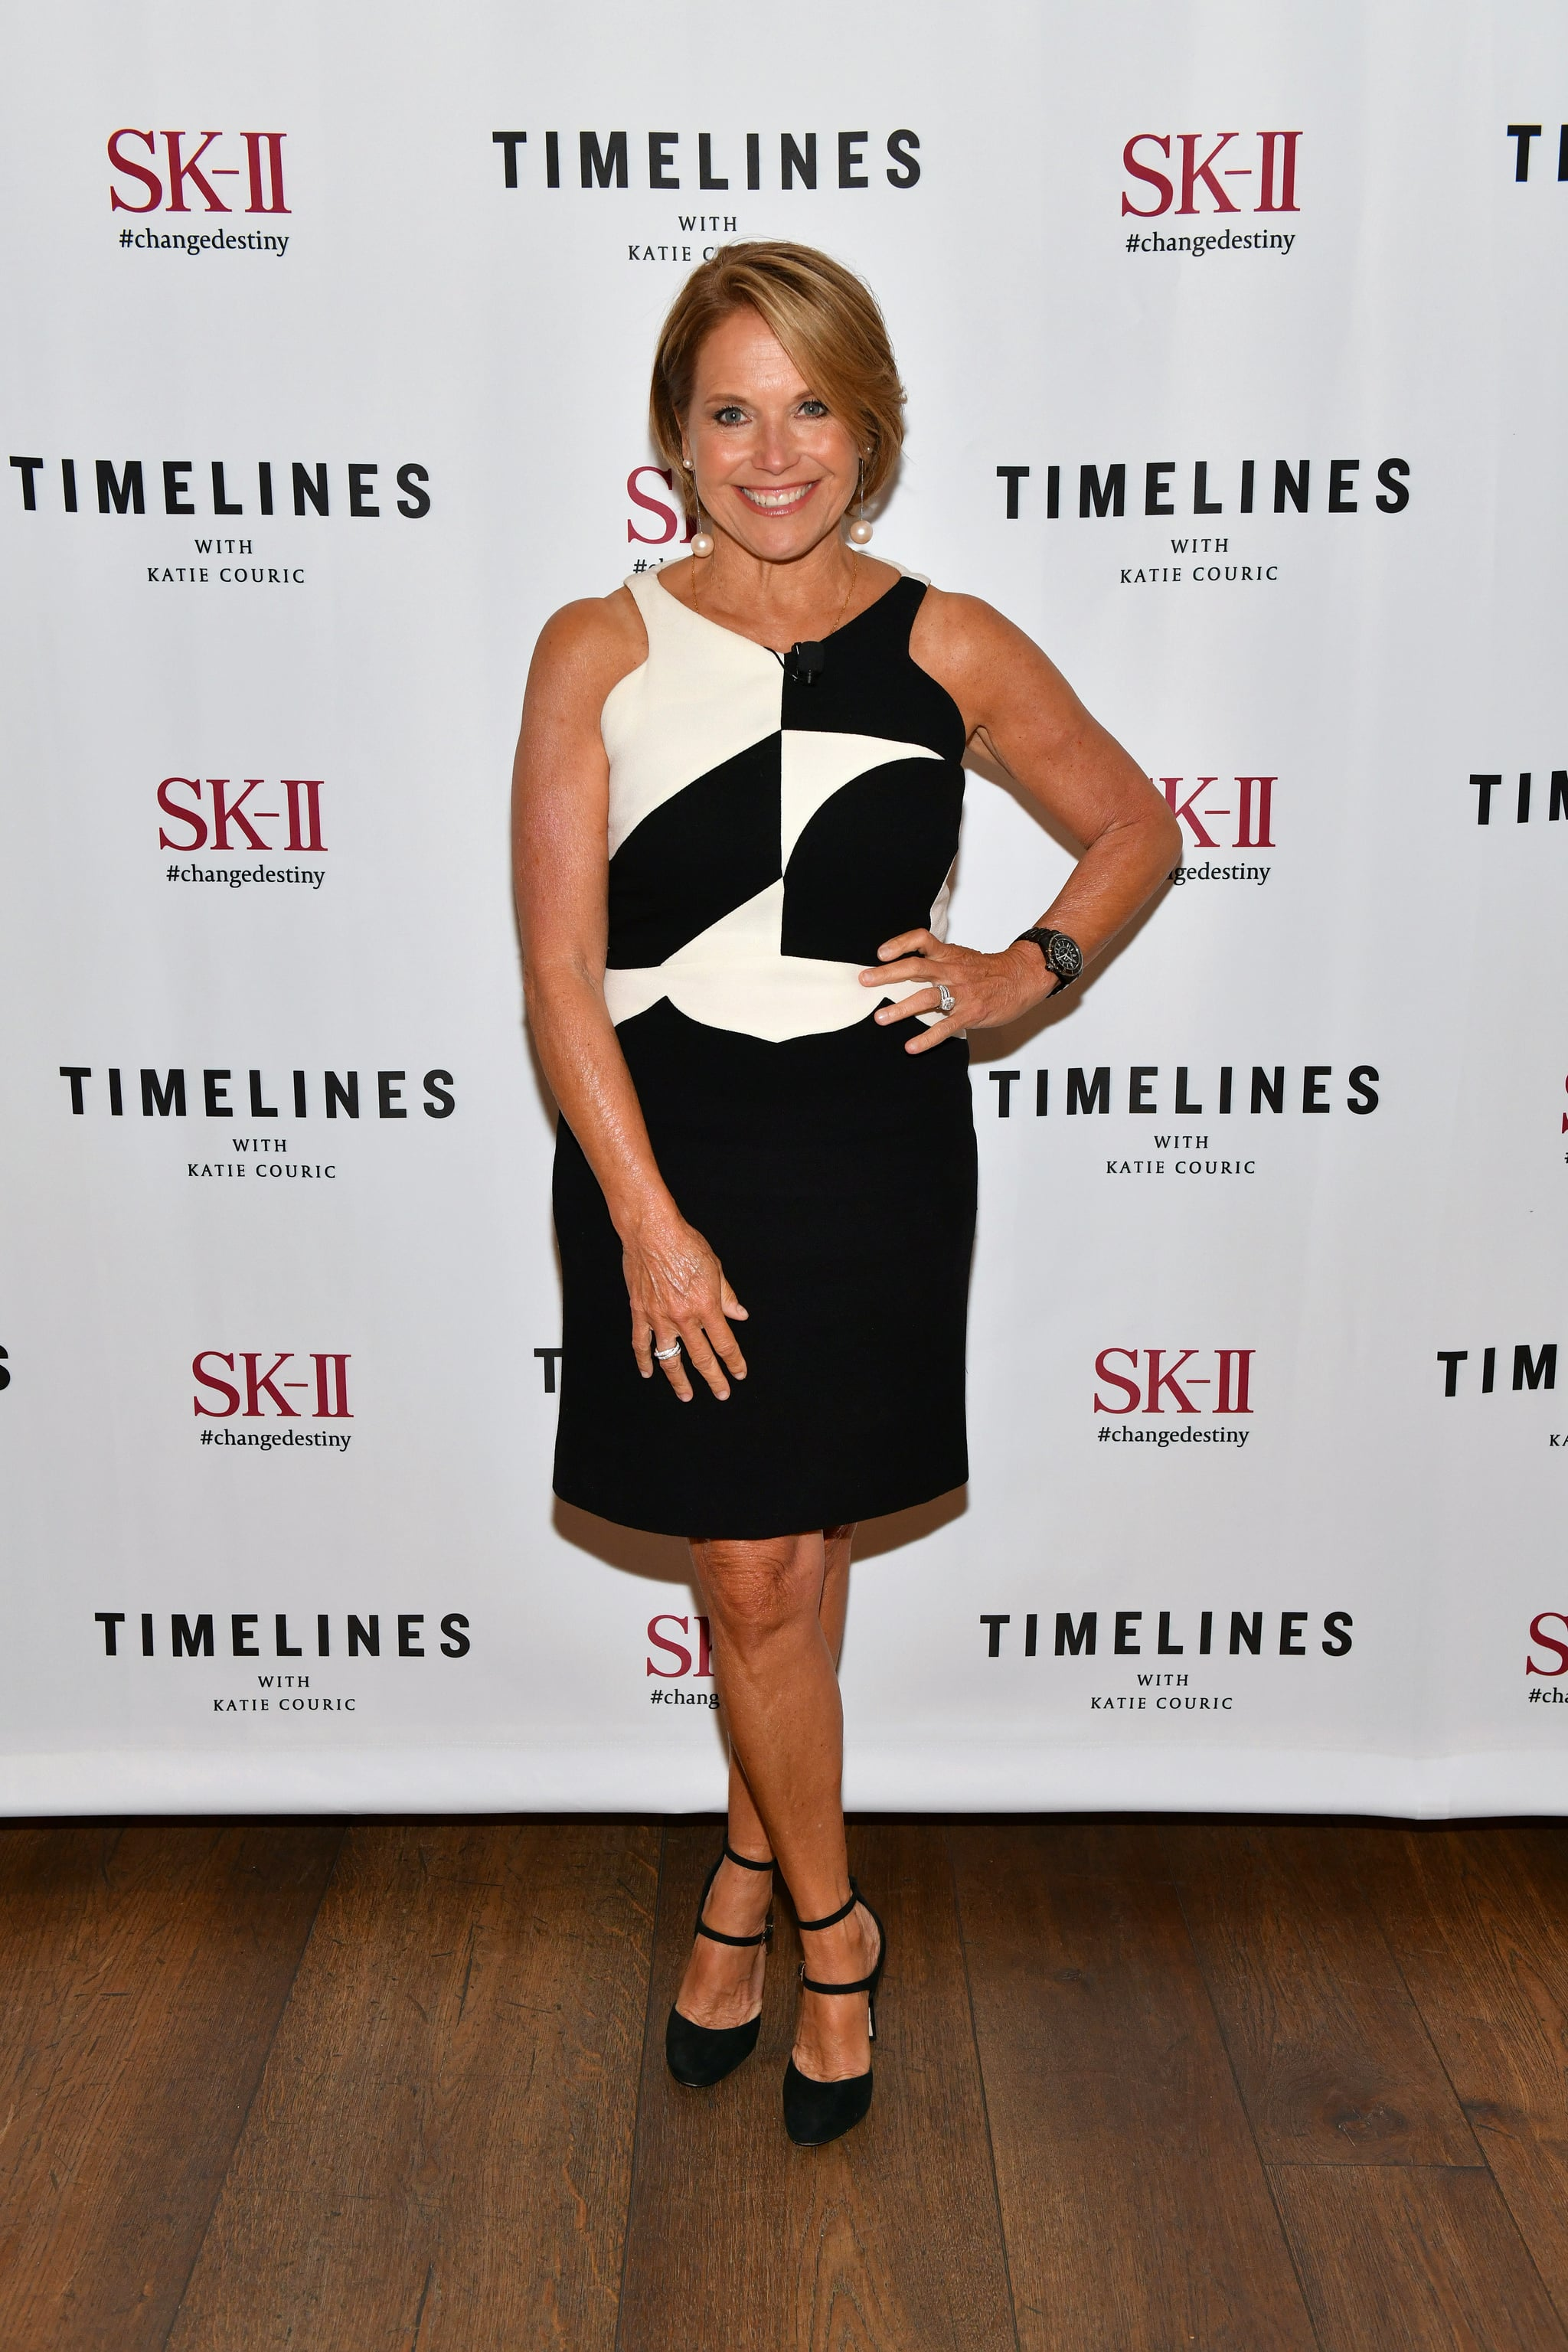 NEW YORK, NEW YORK - JULY 10: Katie Couric attends the premiere of SK-II #ChangeDestiny and Katie Courics New Global Docu-Series -